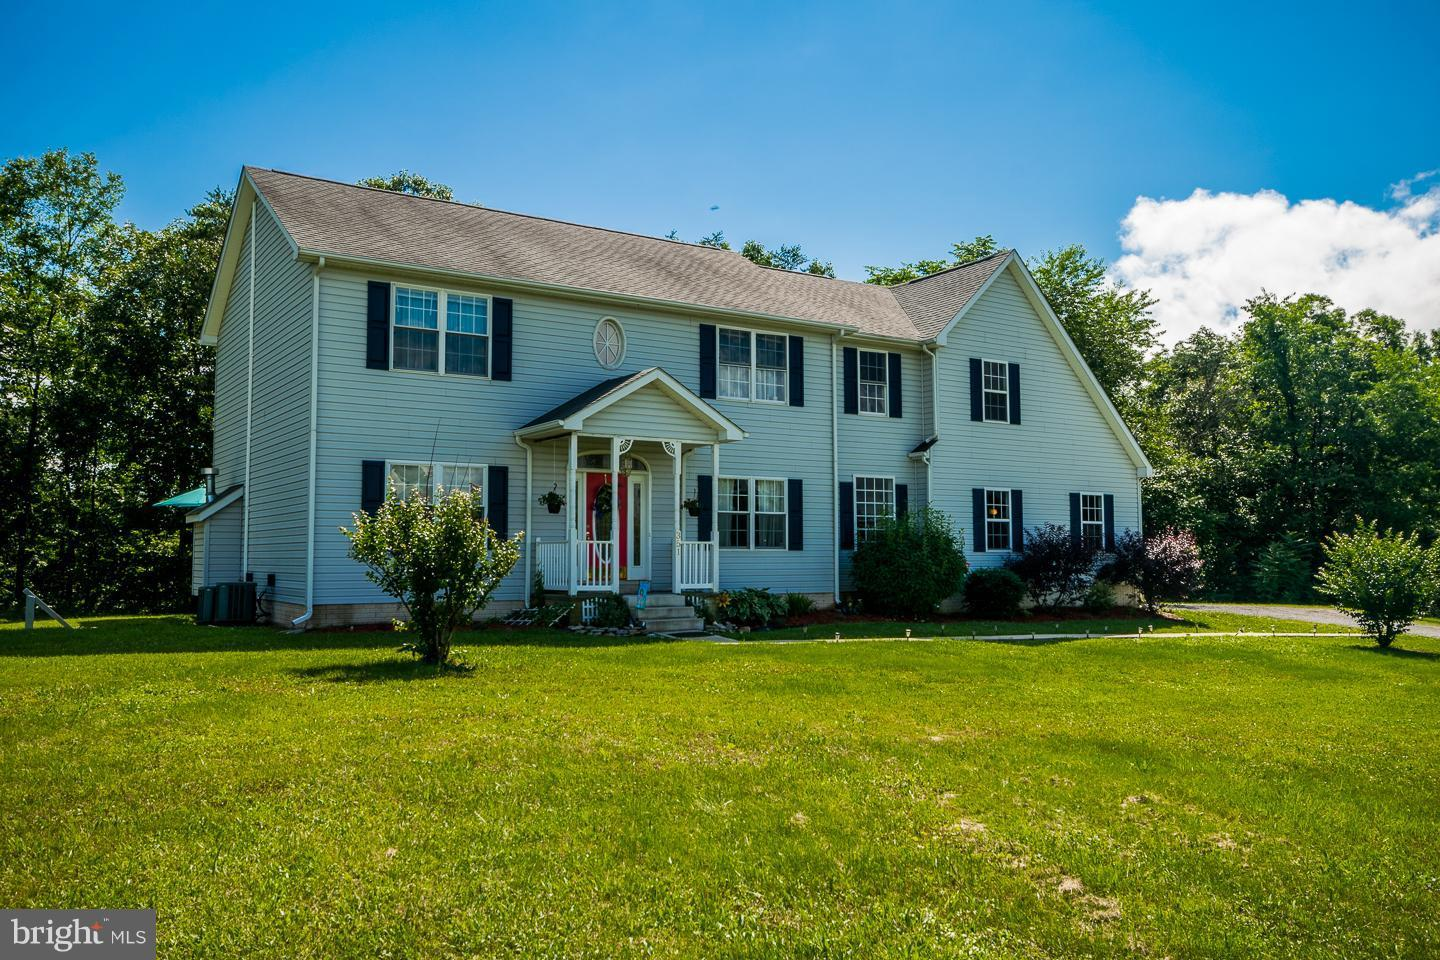 gerrardstown singles View photos and detailed information for 358 mcgill dr, gerrardstown, wv 25420, mls#1009080710, don't miss your chance to own this hot property.